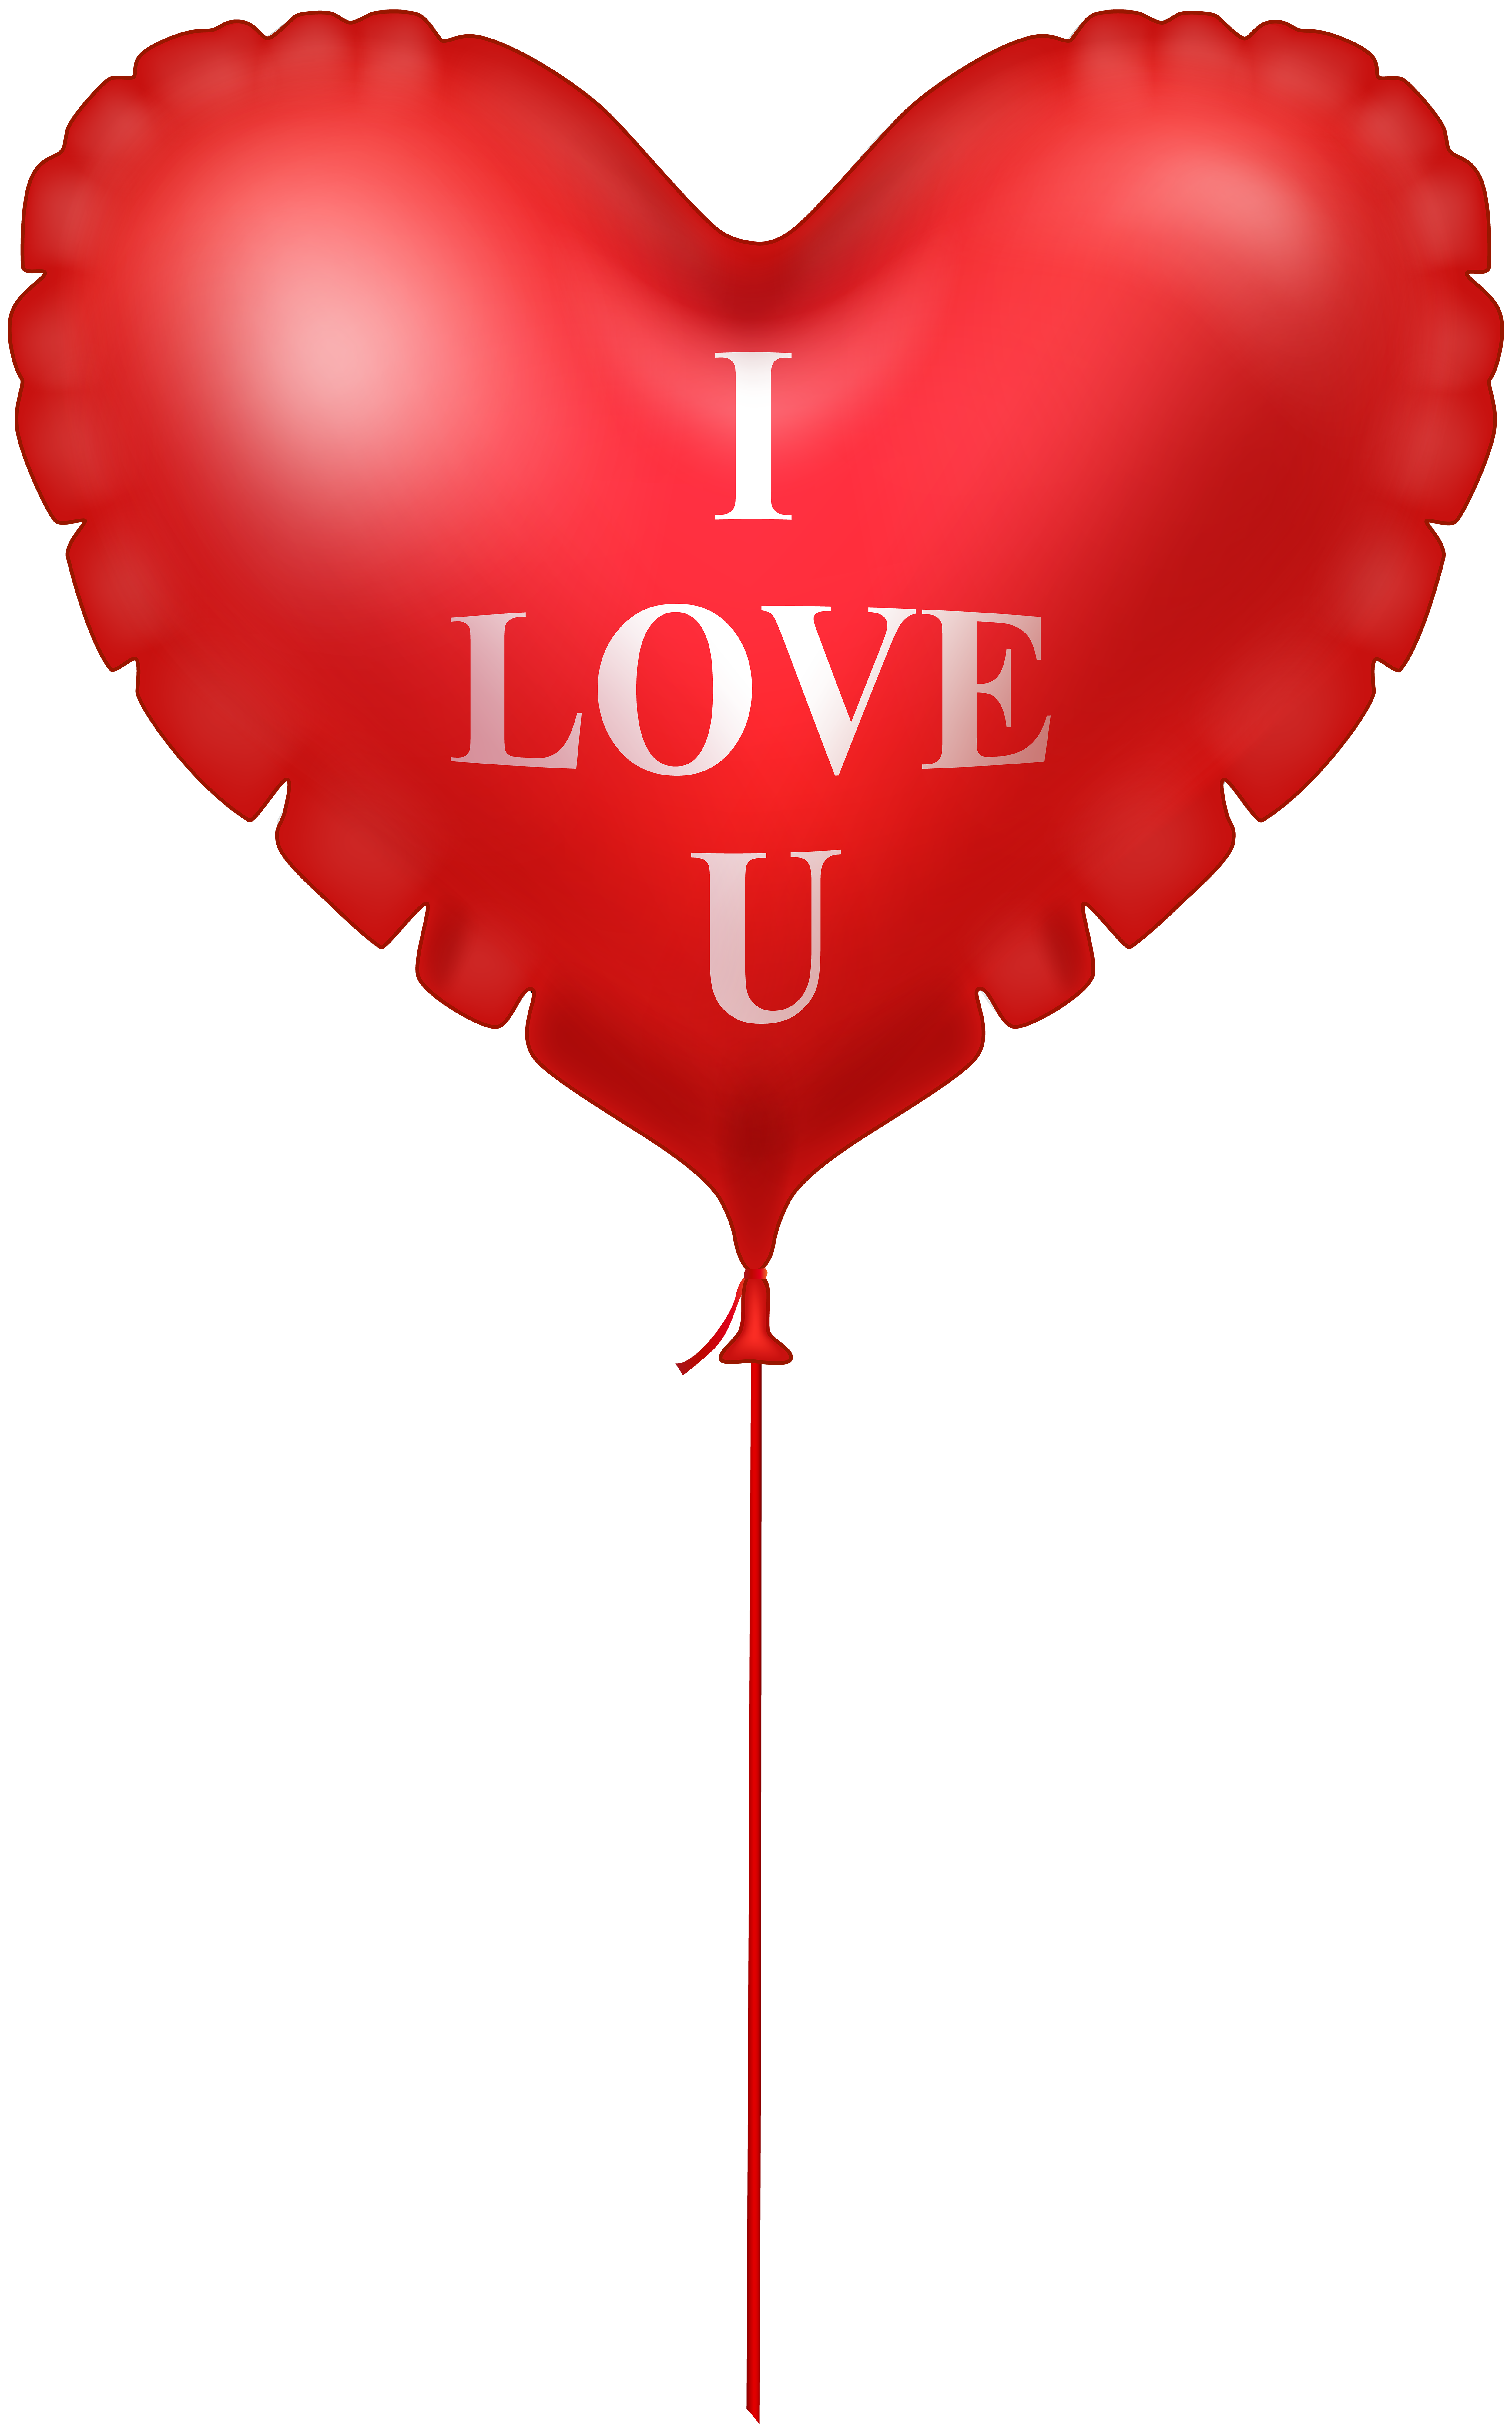 I heart png. Love you balloon image